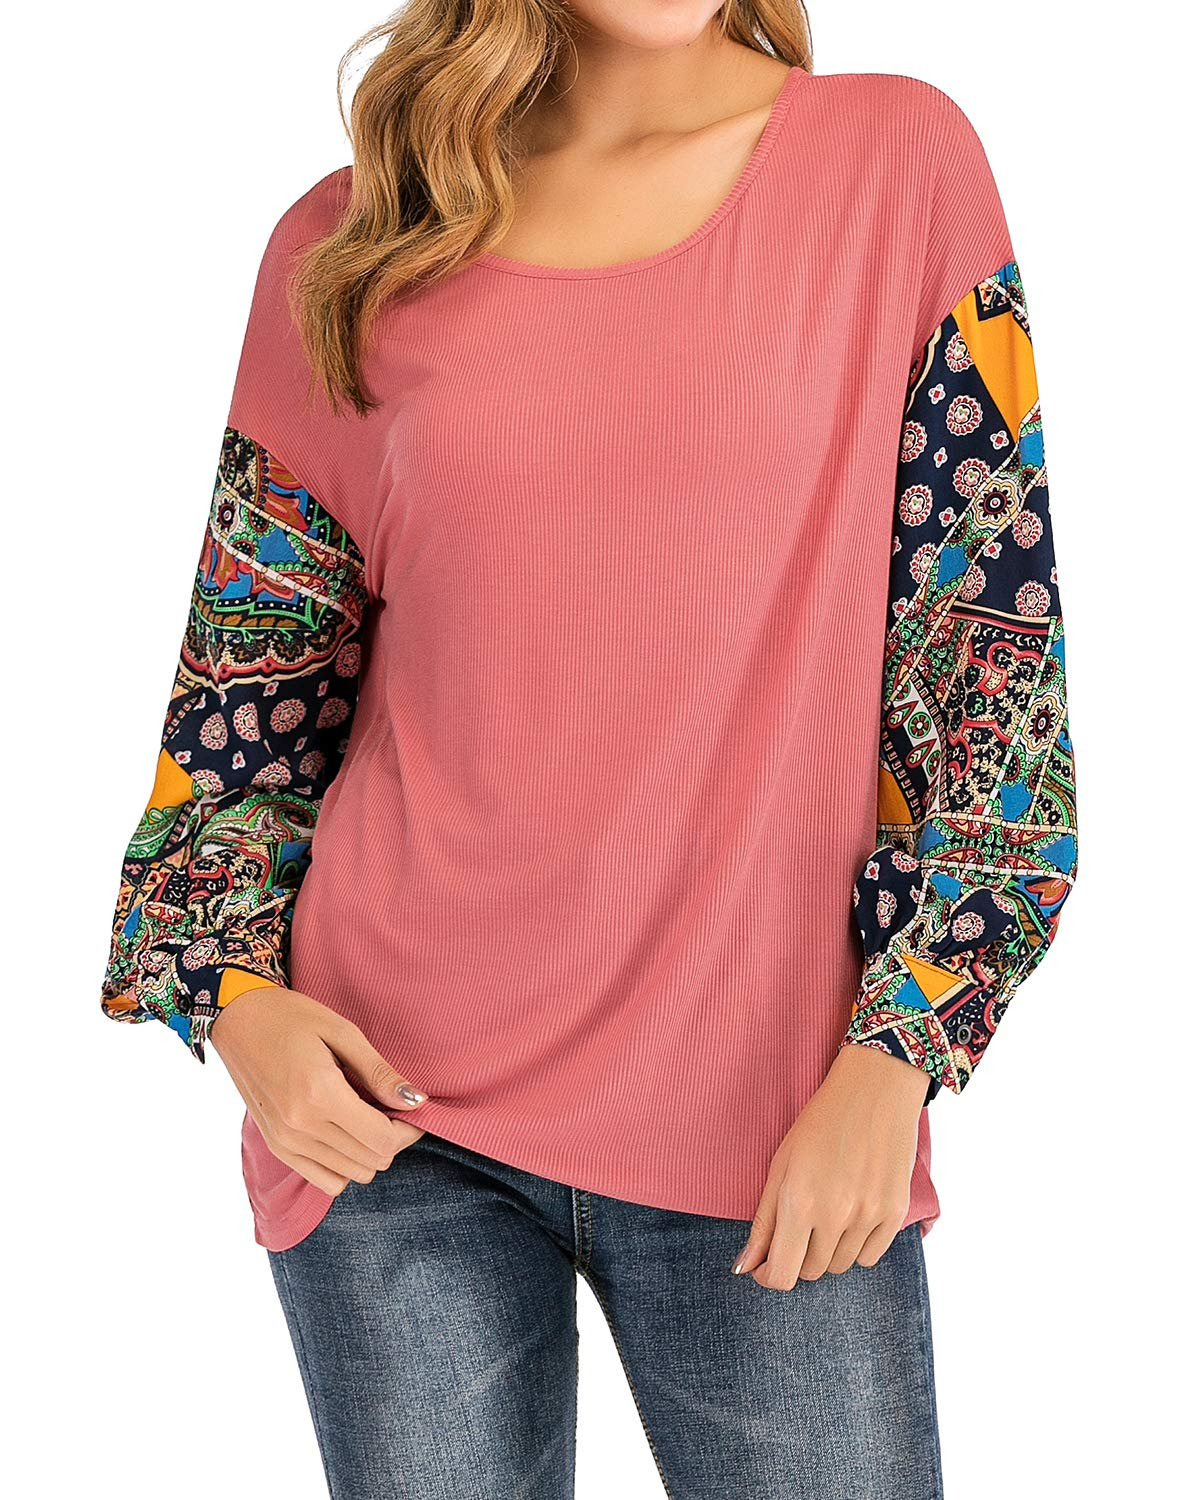 LeMarnia Knit Tops for Women, Ladies Puff Sleeve Crewneck Loose Fit Patchwork Shirts Floral Print Patchwork Casual Pullover Sweatshirts Pink XL